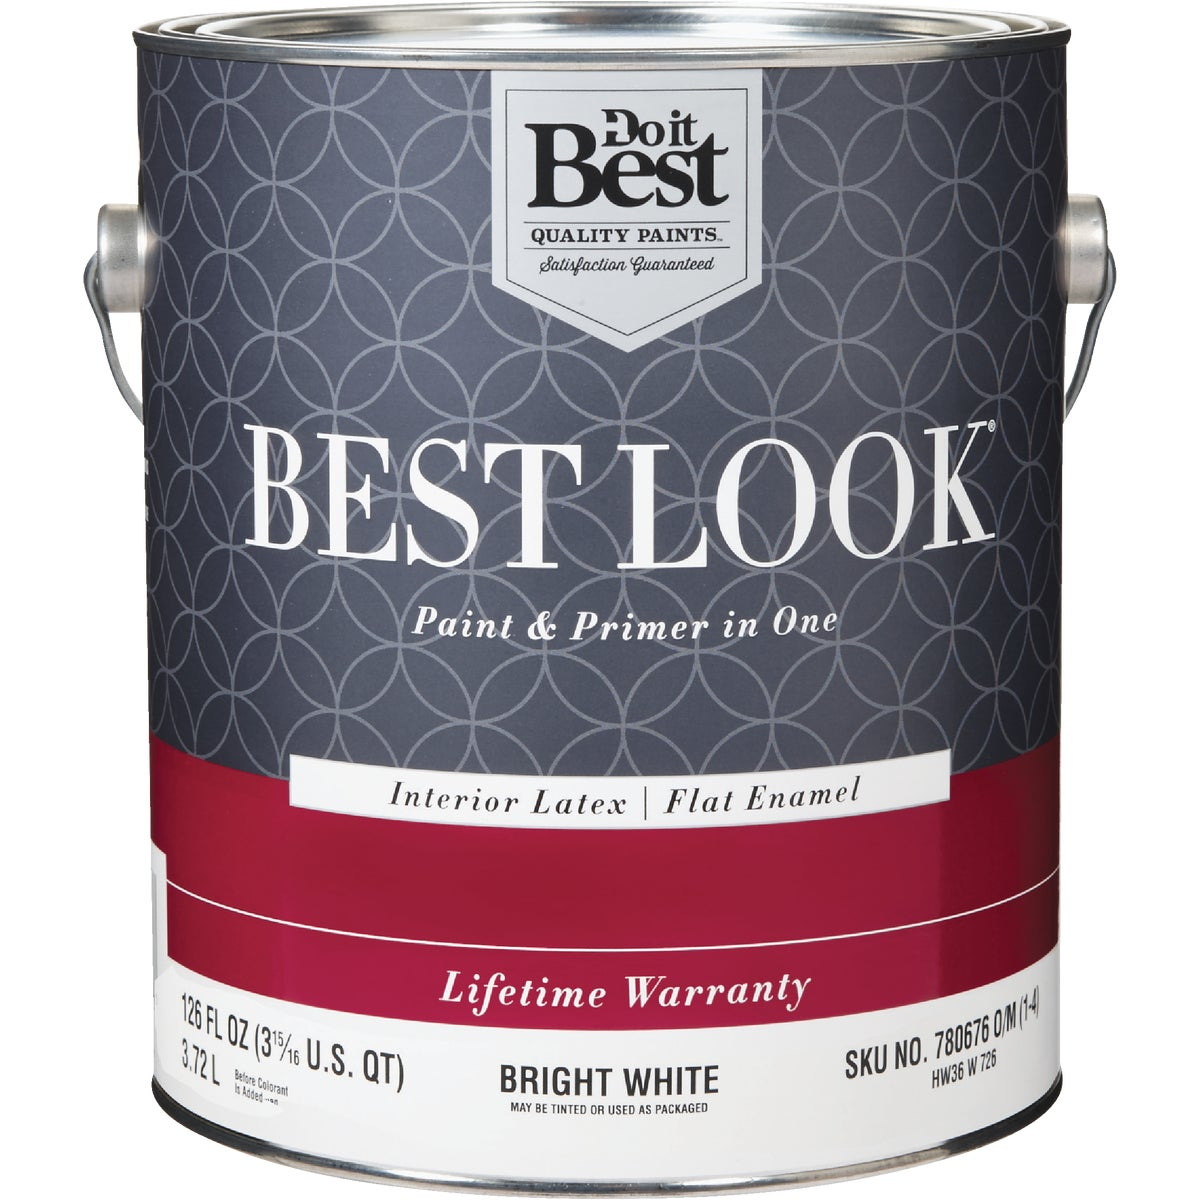 INT FLT BRIGHT WHT PAINT - HW36W0726-16 by Do it Best